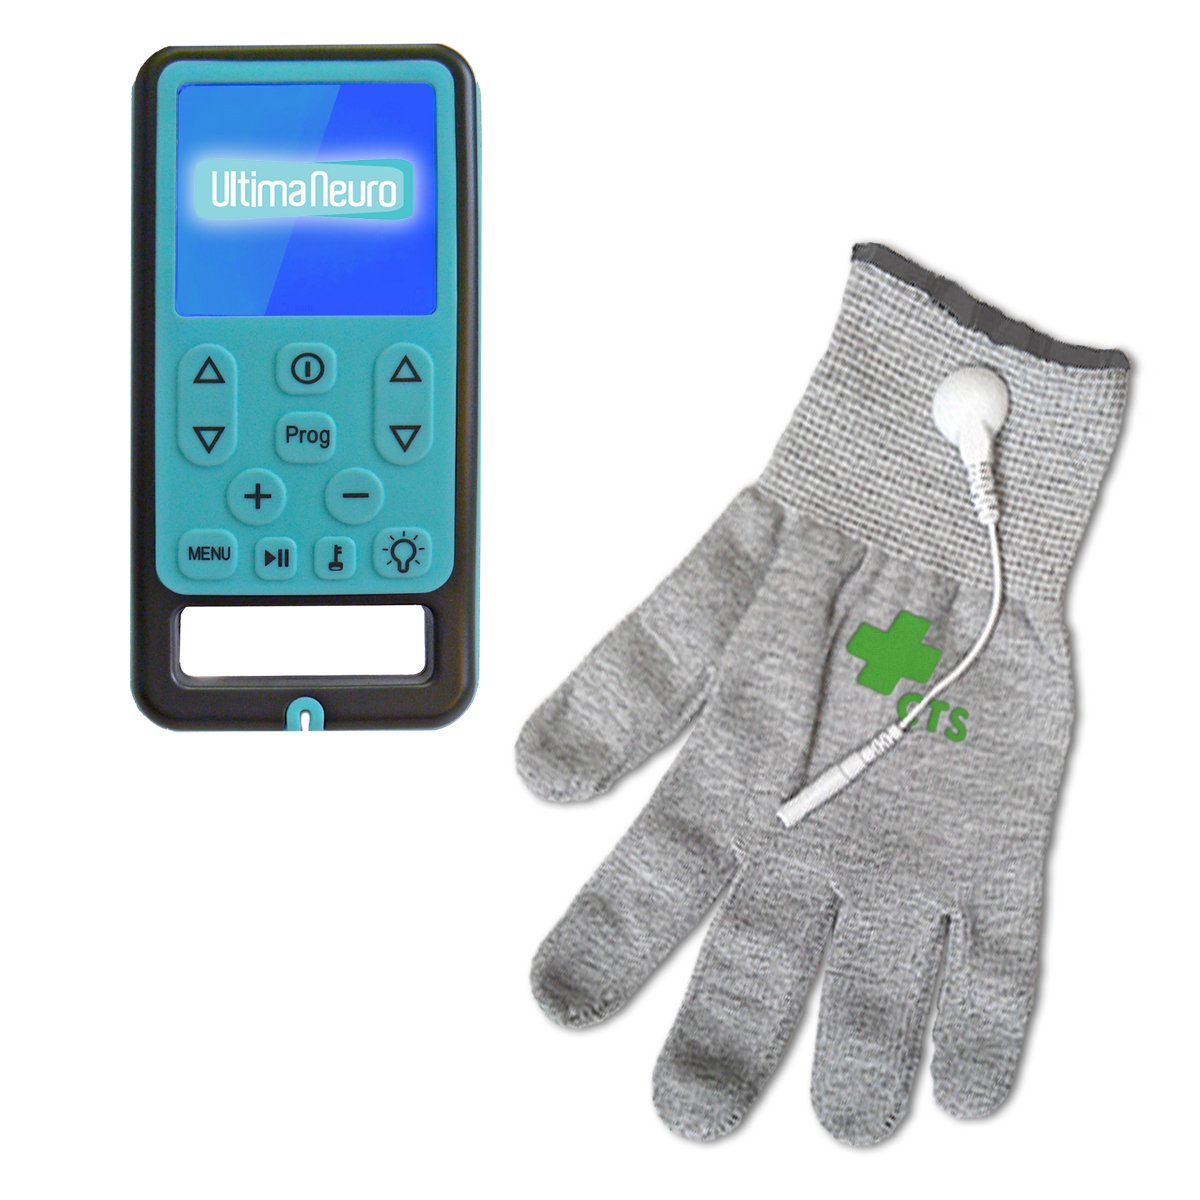 Ultima Neuro Neuropathy Treatment System for Relief of Peripheral, Diabetic & Poly Neuropathy Nerve Pain with Conductive Glove (XS-S) by Ultima Neuro & Conductive Therapy Shop